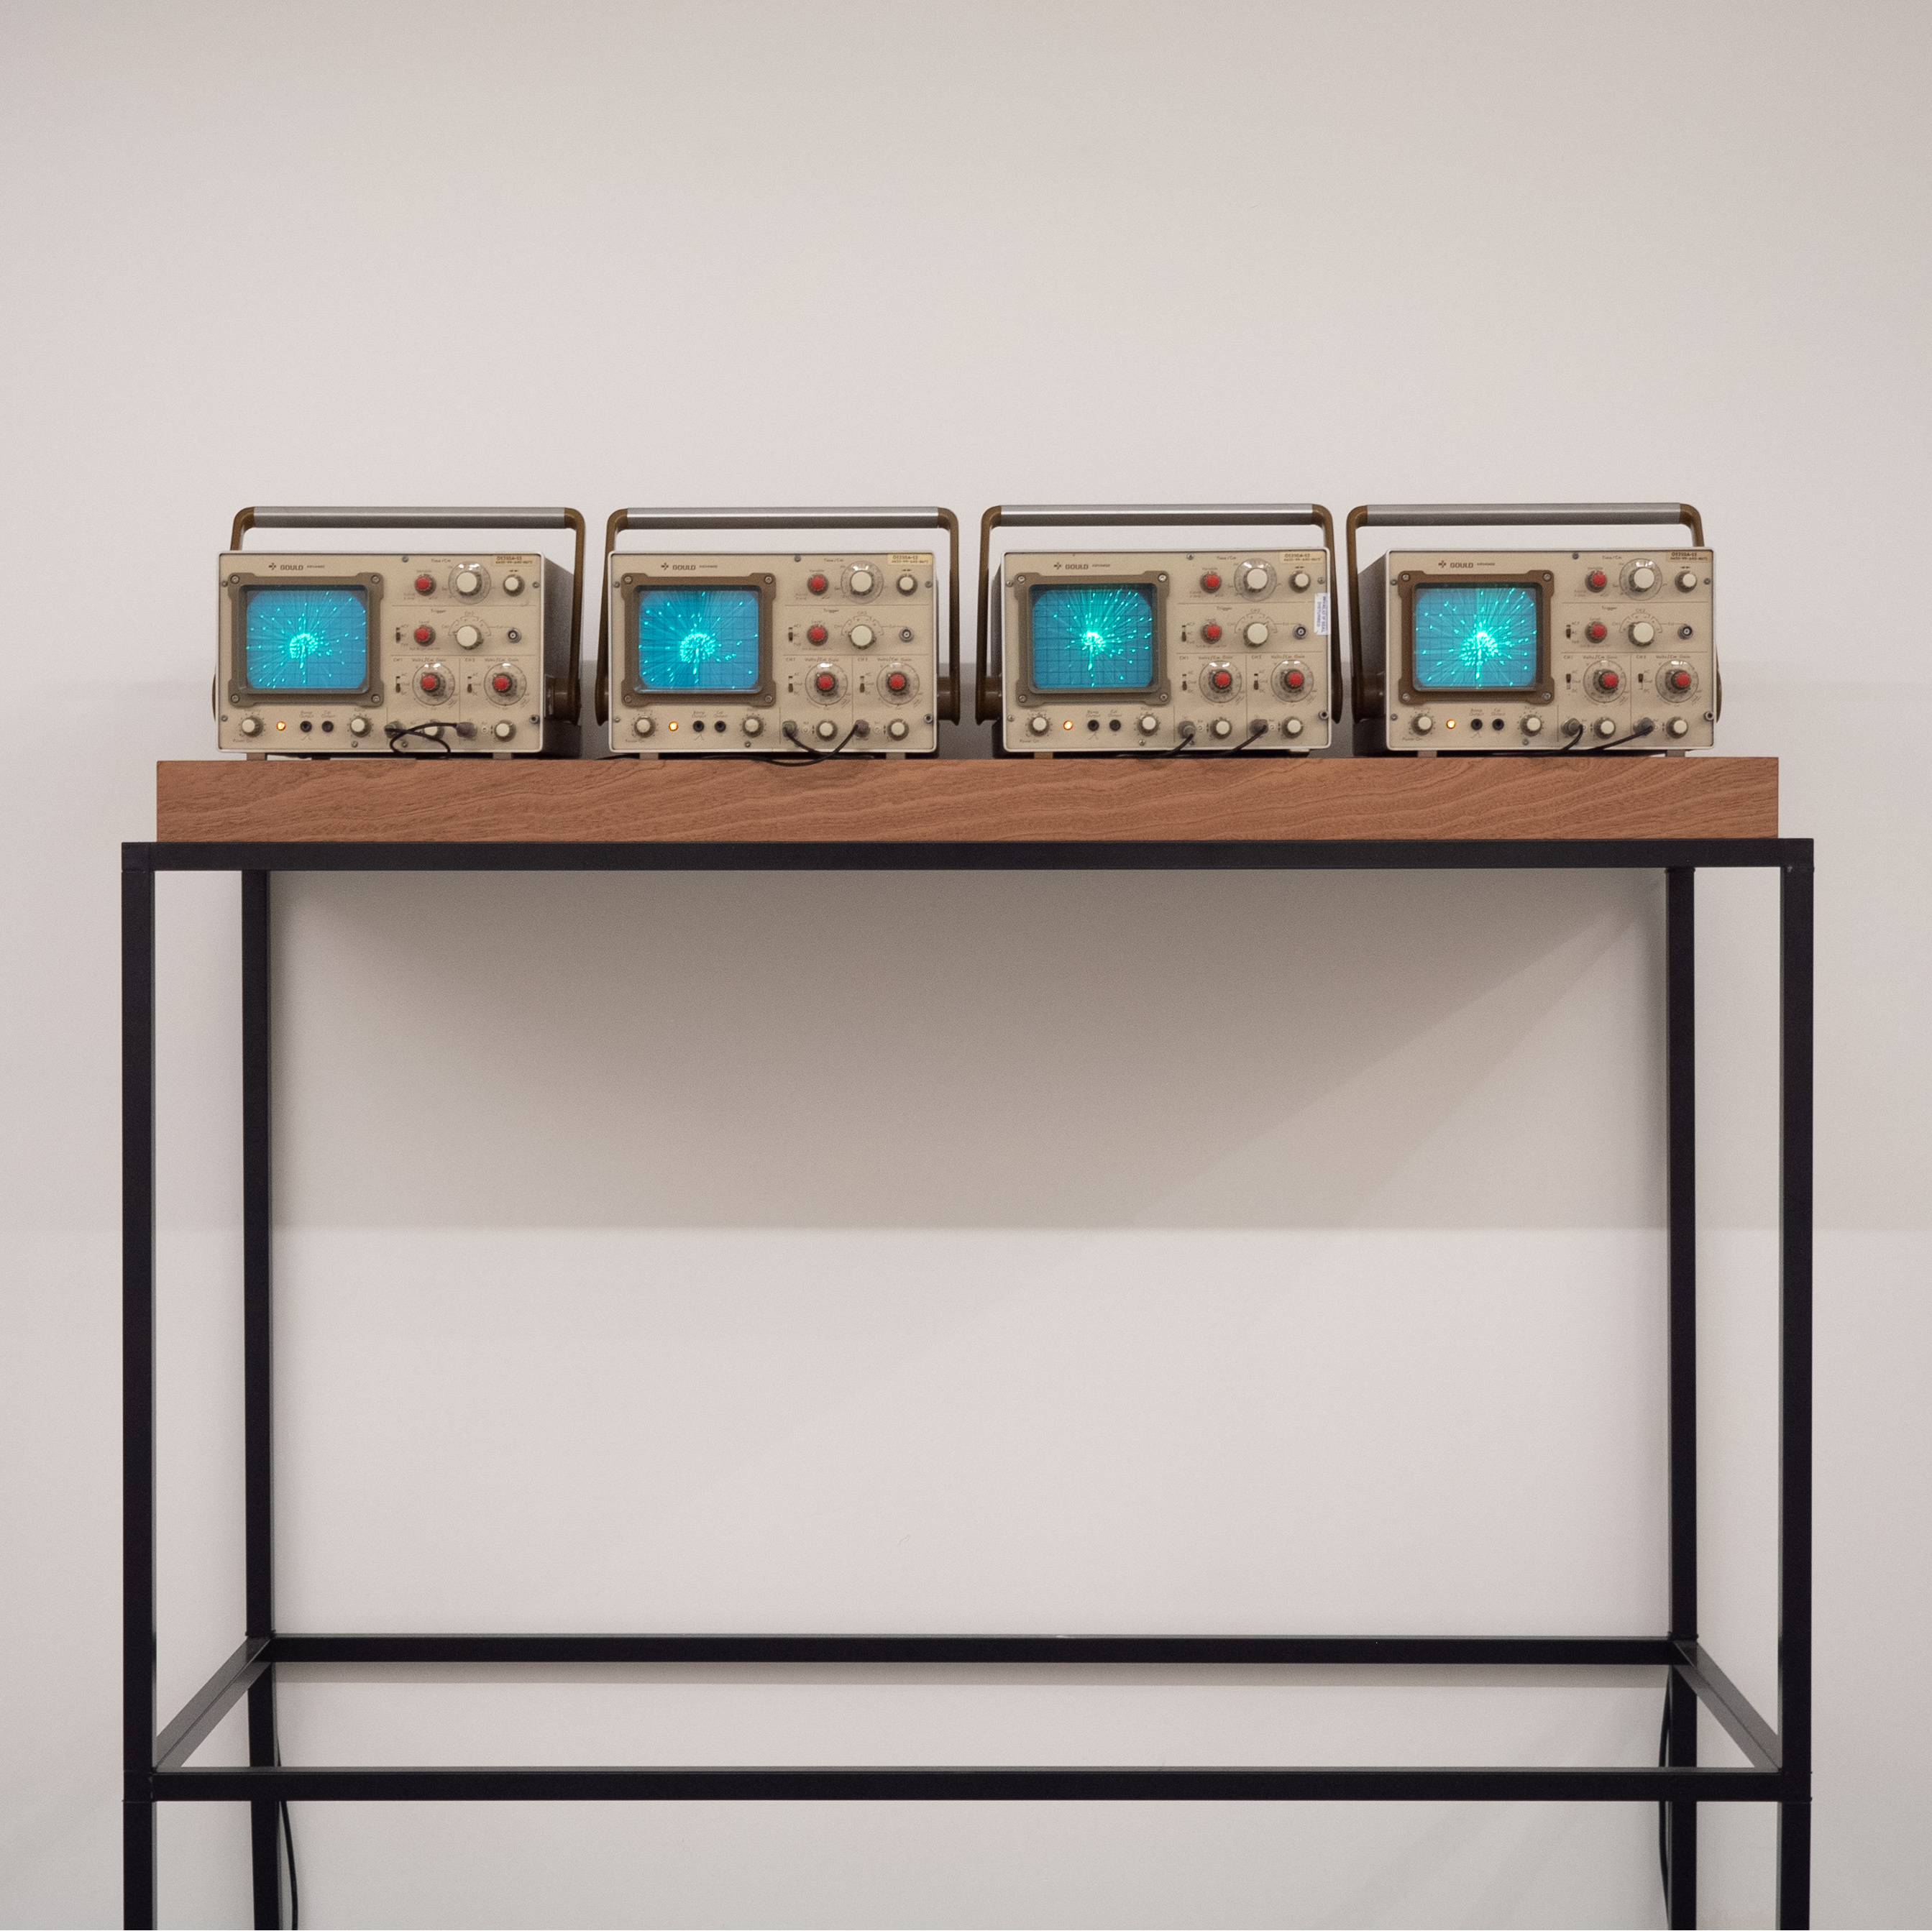 Alpha Beta Delta Gamma (2020)